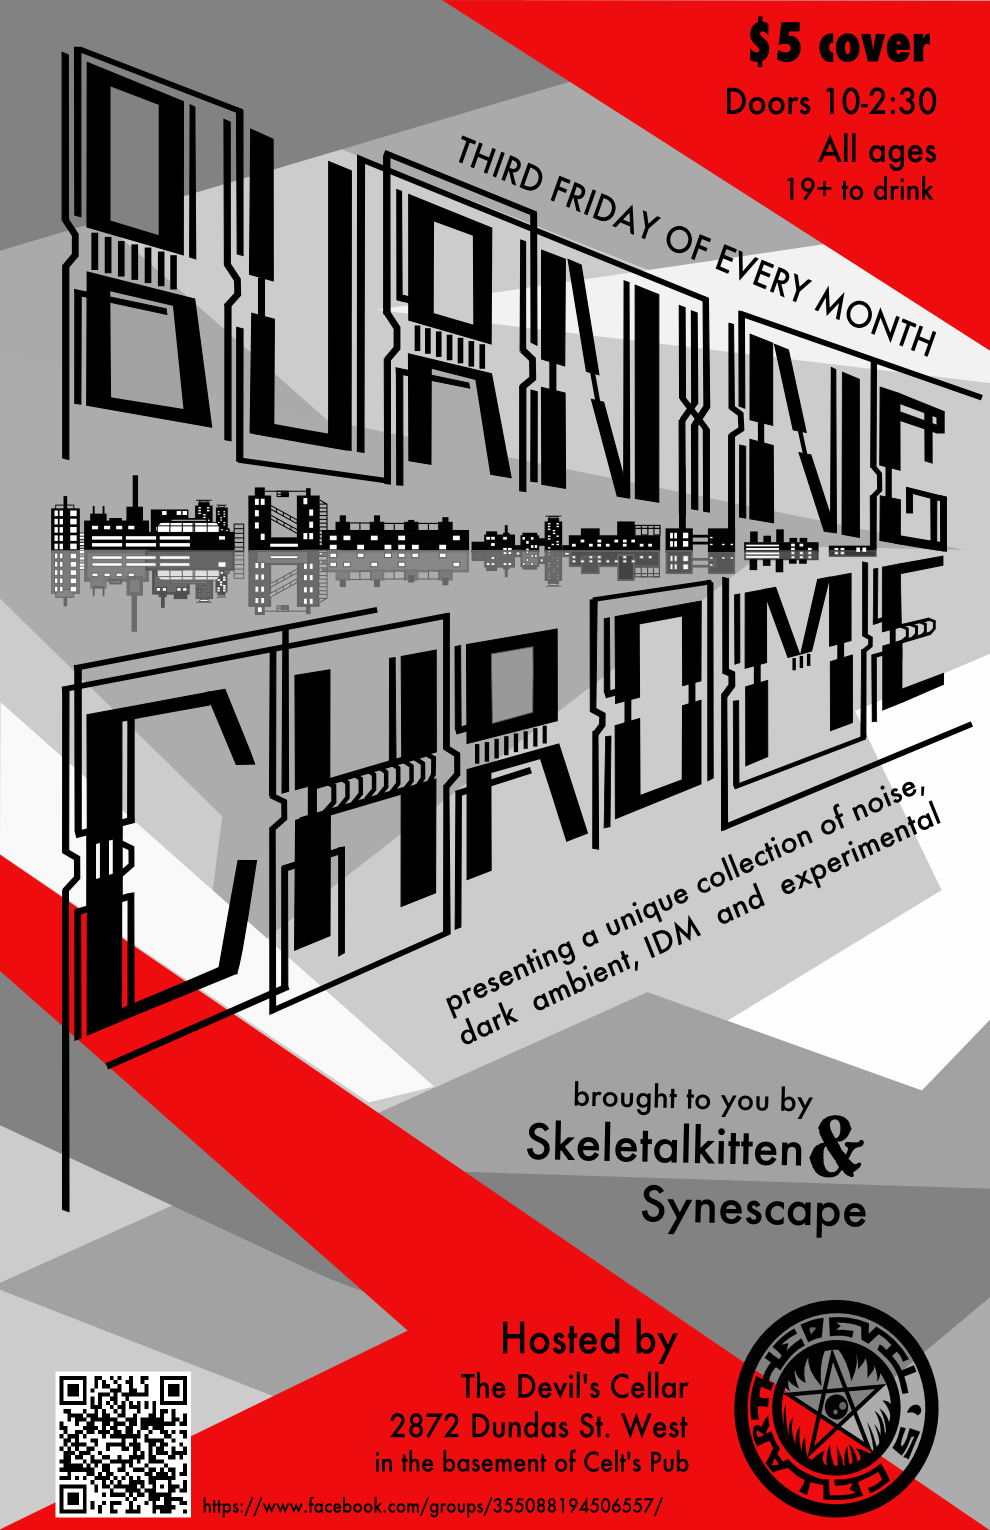 Event poster for Burning Chrome - a Toronto noise event with live DJs and bands